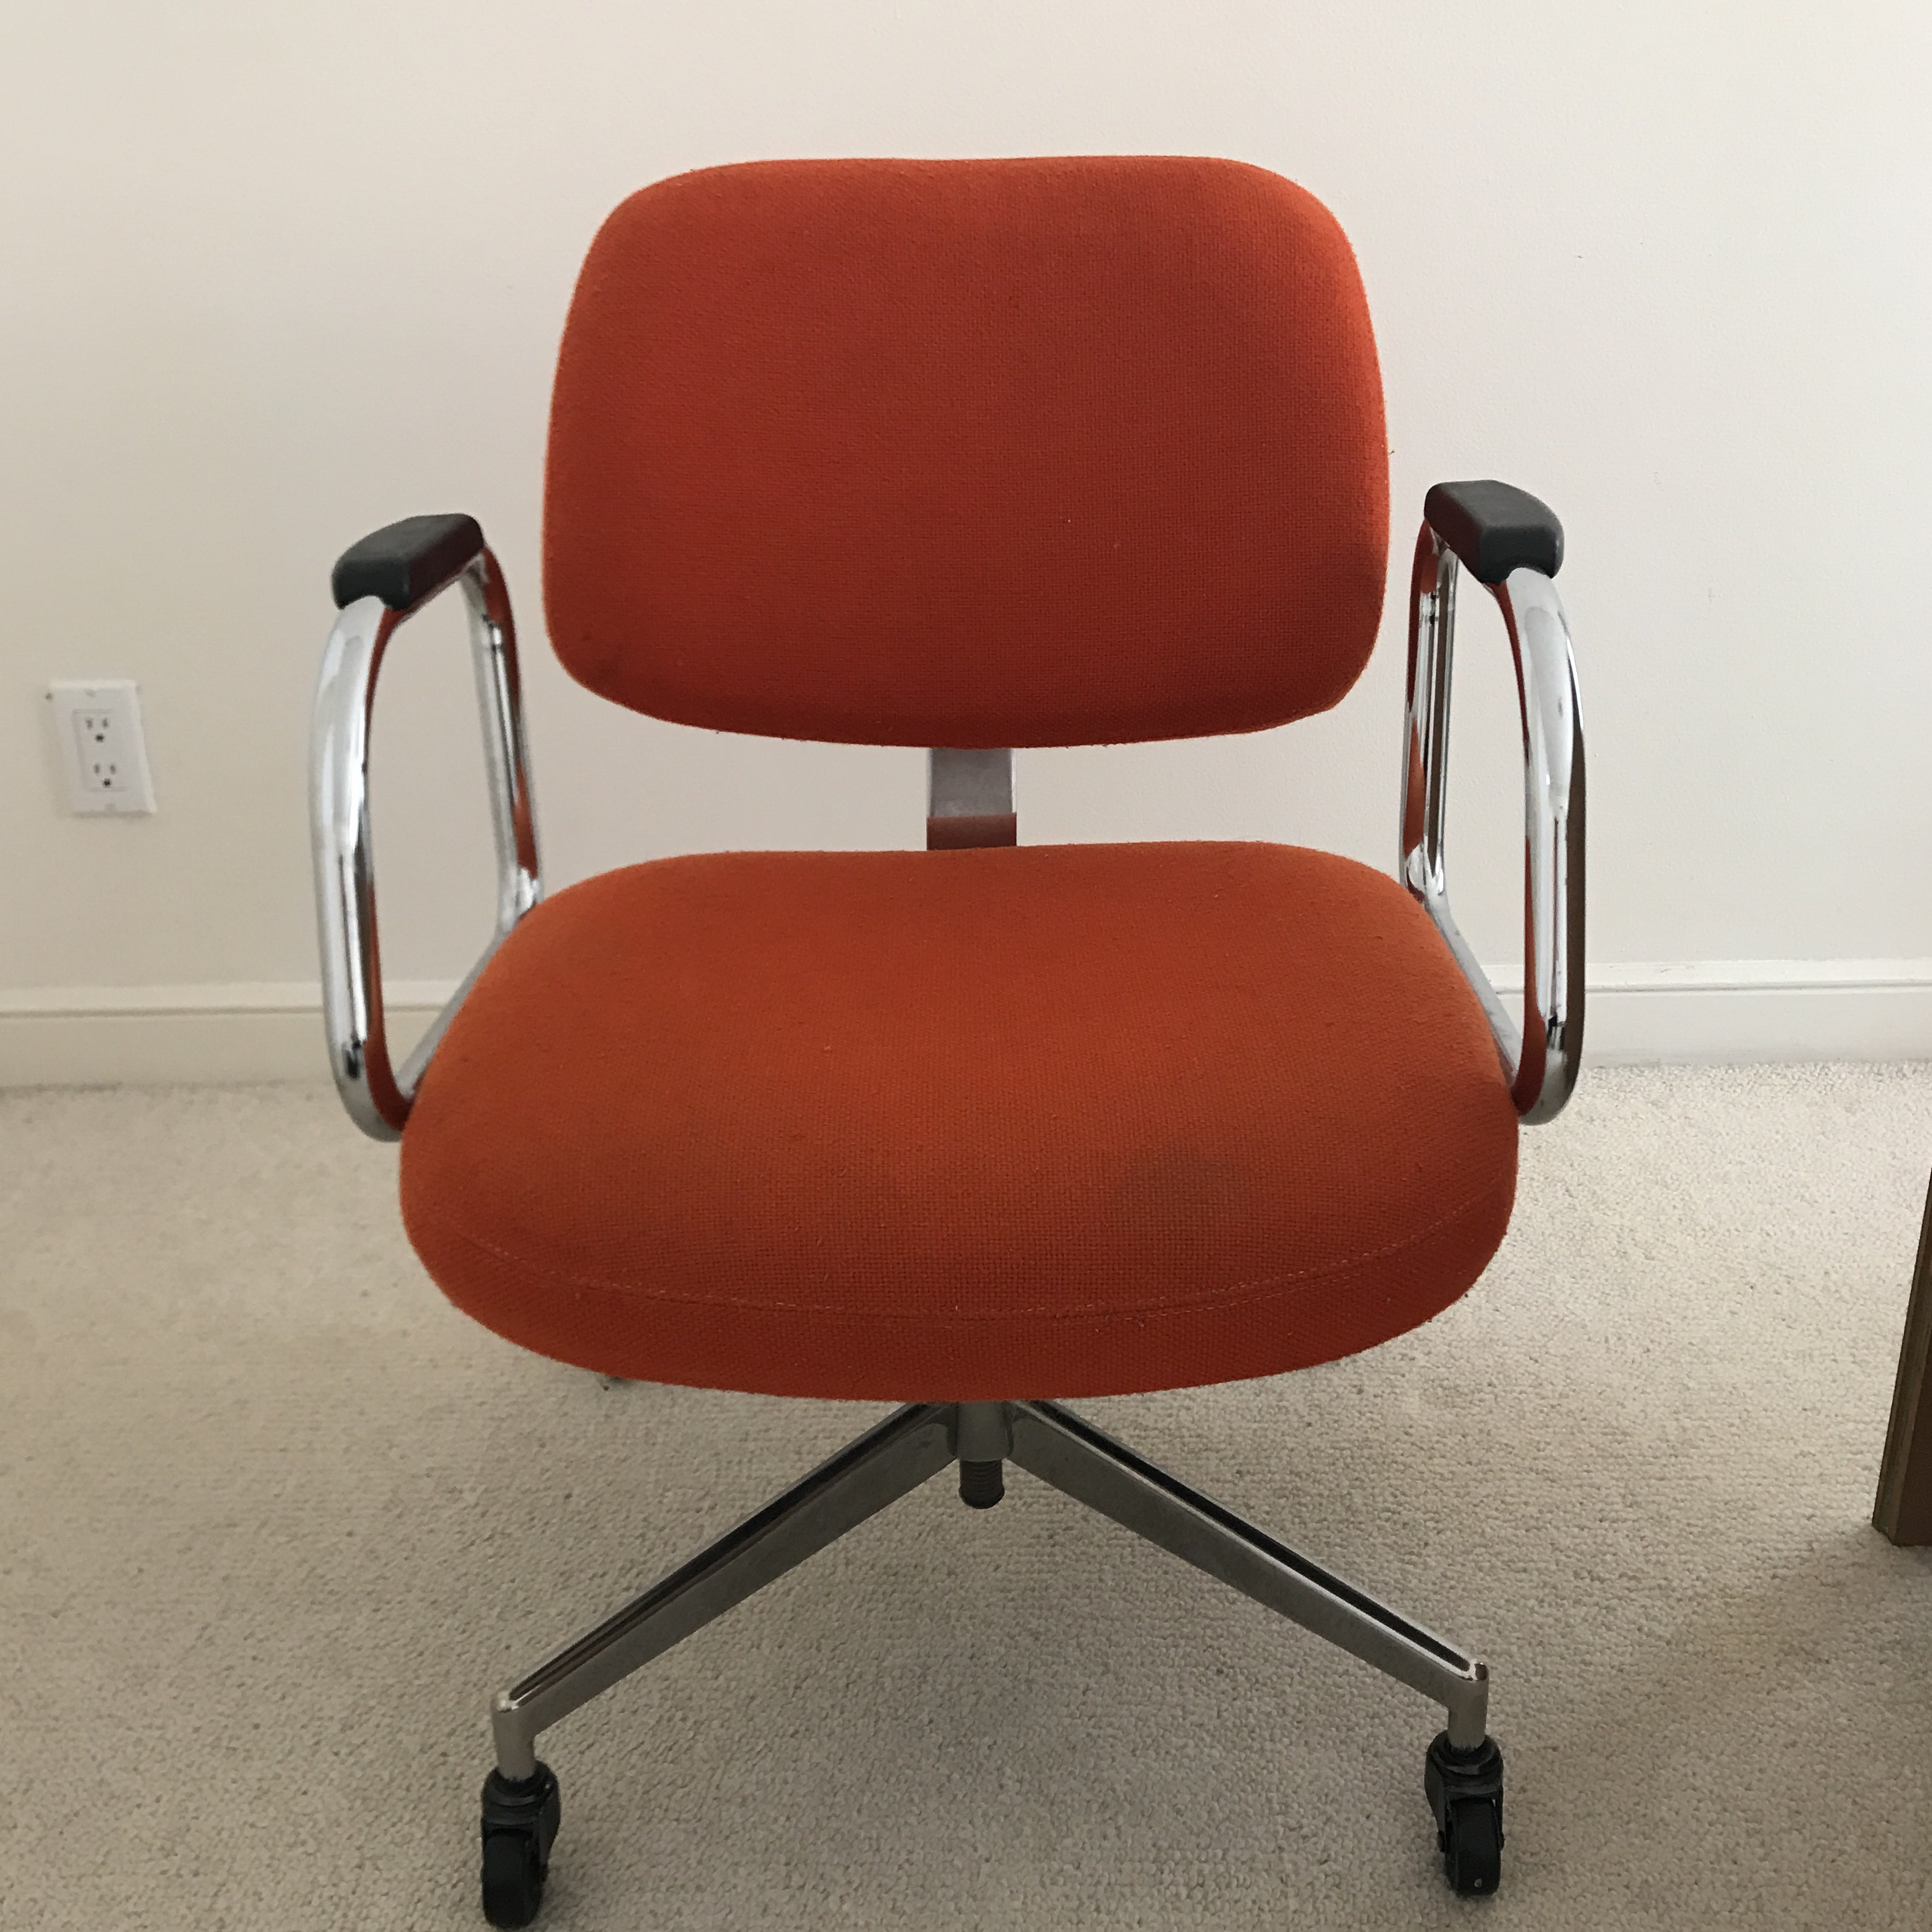 High Quality Mid Century Modern Red Office Chair By Harter Furniture Company   Image 2  Of 5